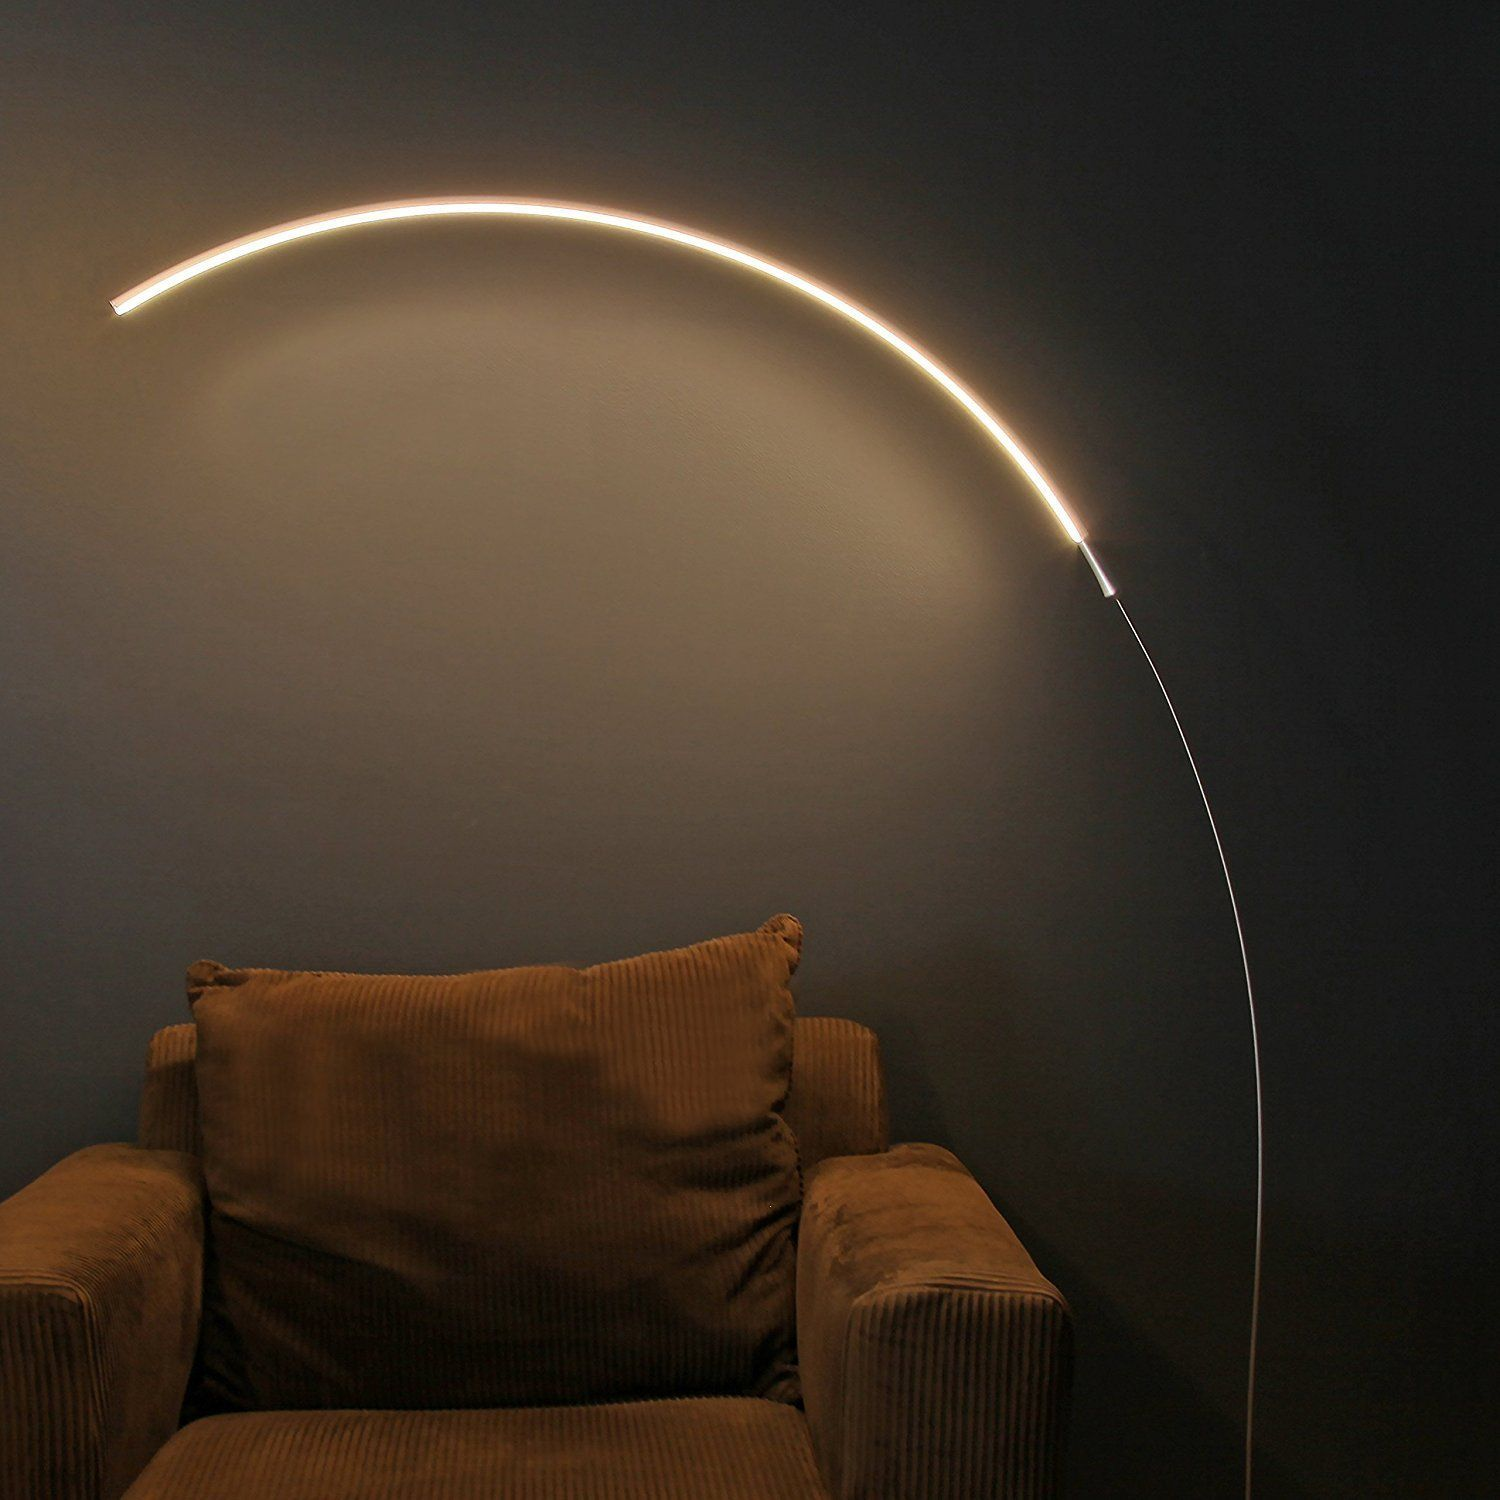 Superior Brightech   Sparq LED Arc Floor Lamp   Curved, Contemporary Minimalist  Lighting Design   Warm White Light   Silver     Amazon.com